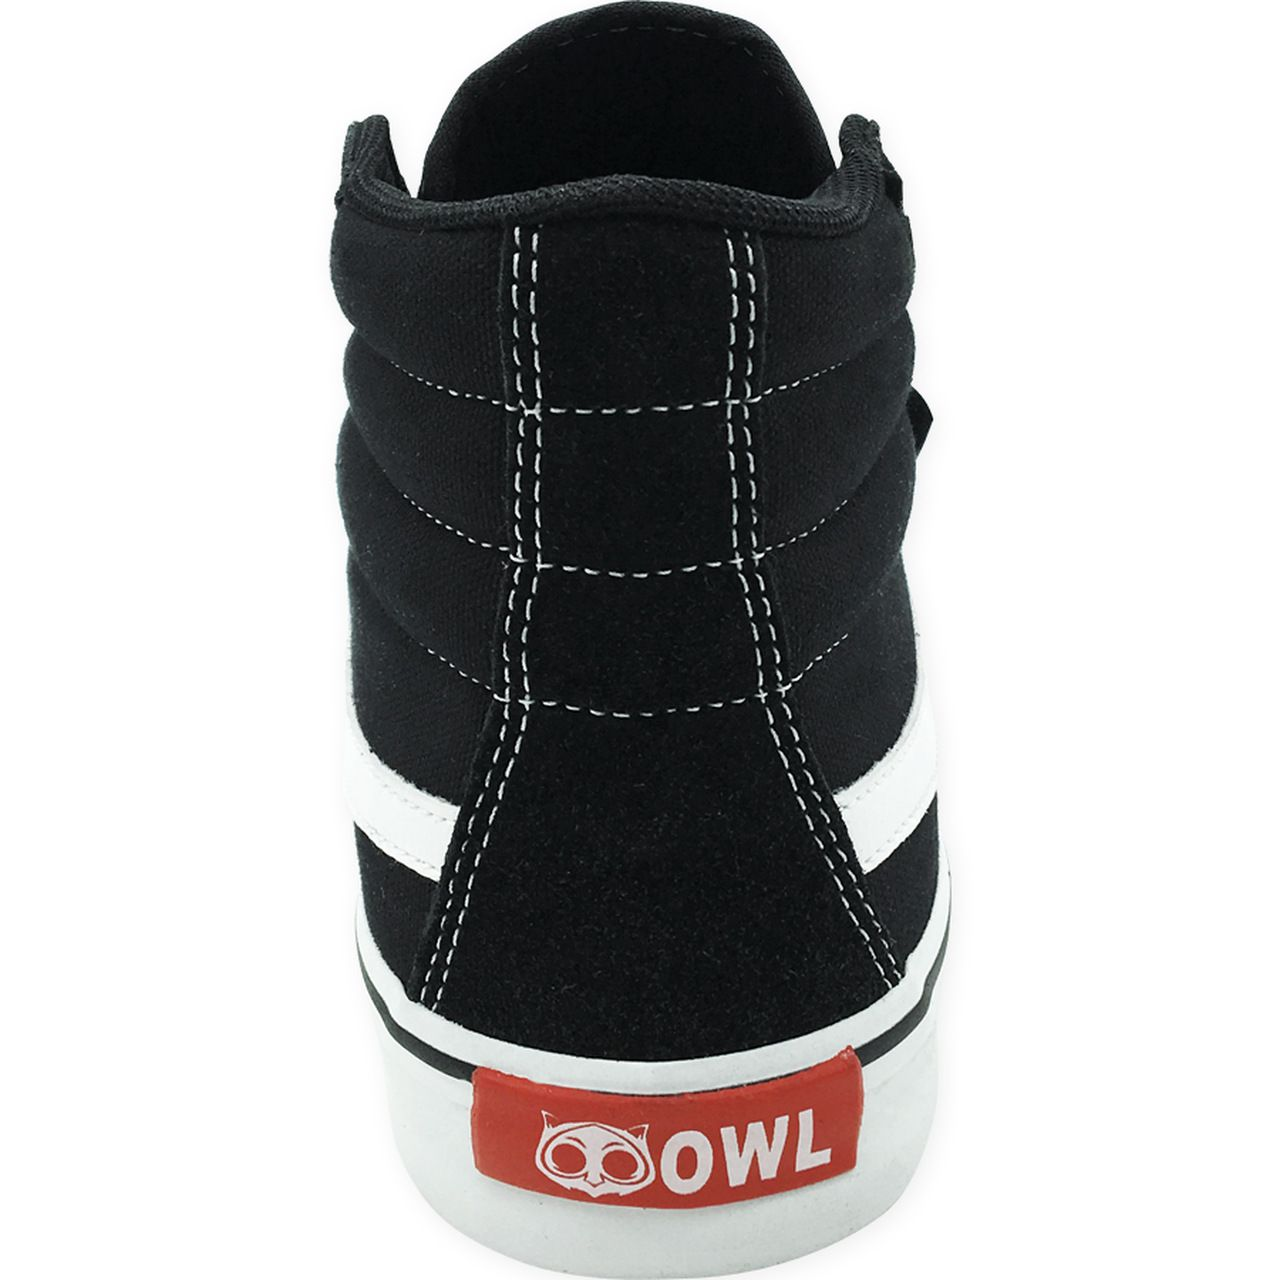 Tênis Owl Sports Old School Cano Alto